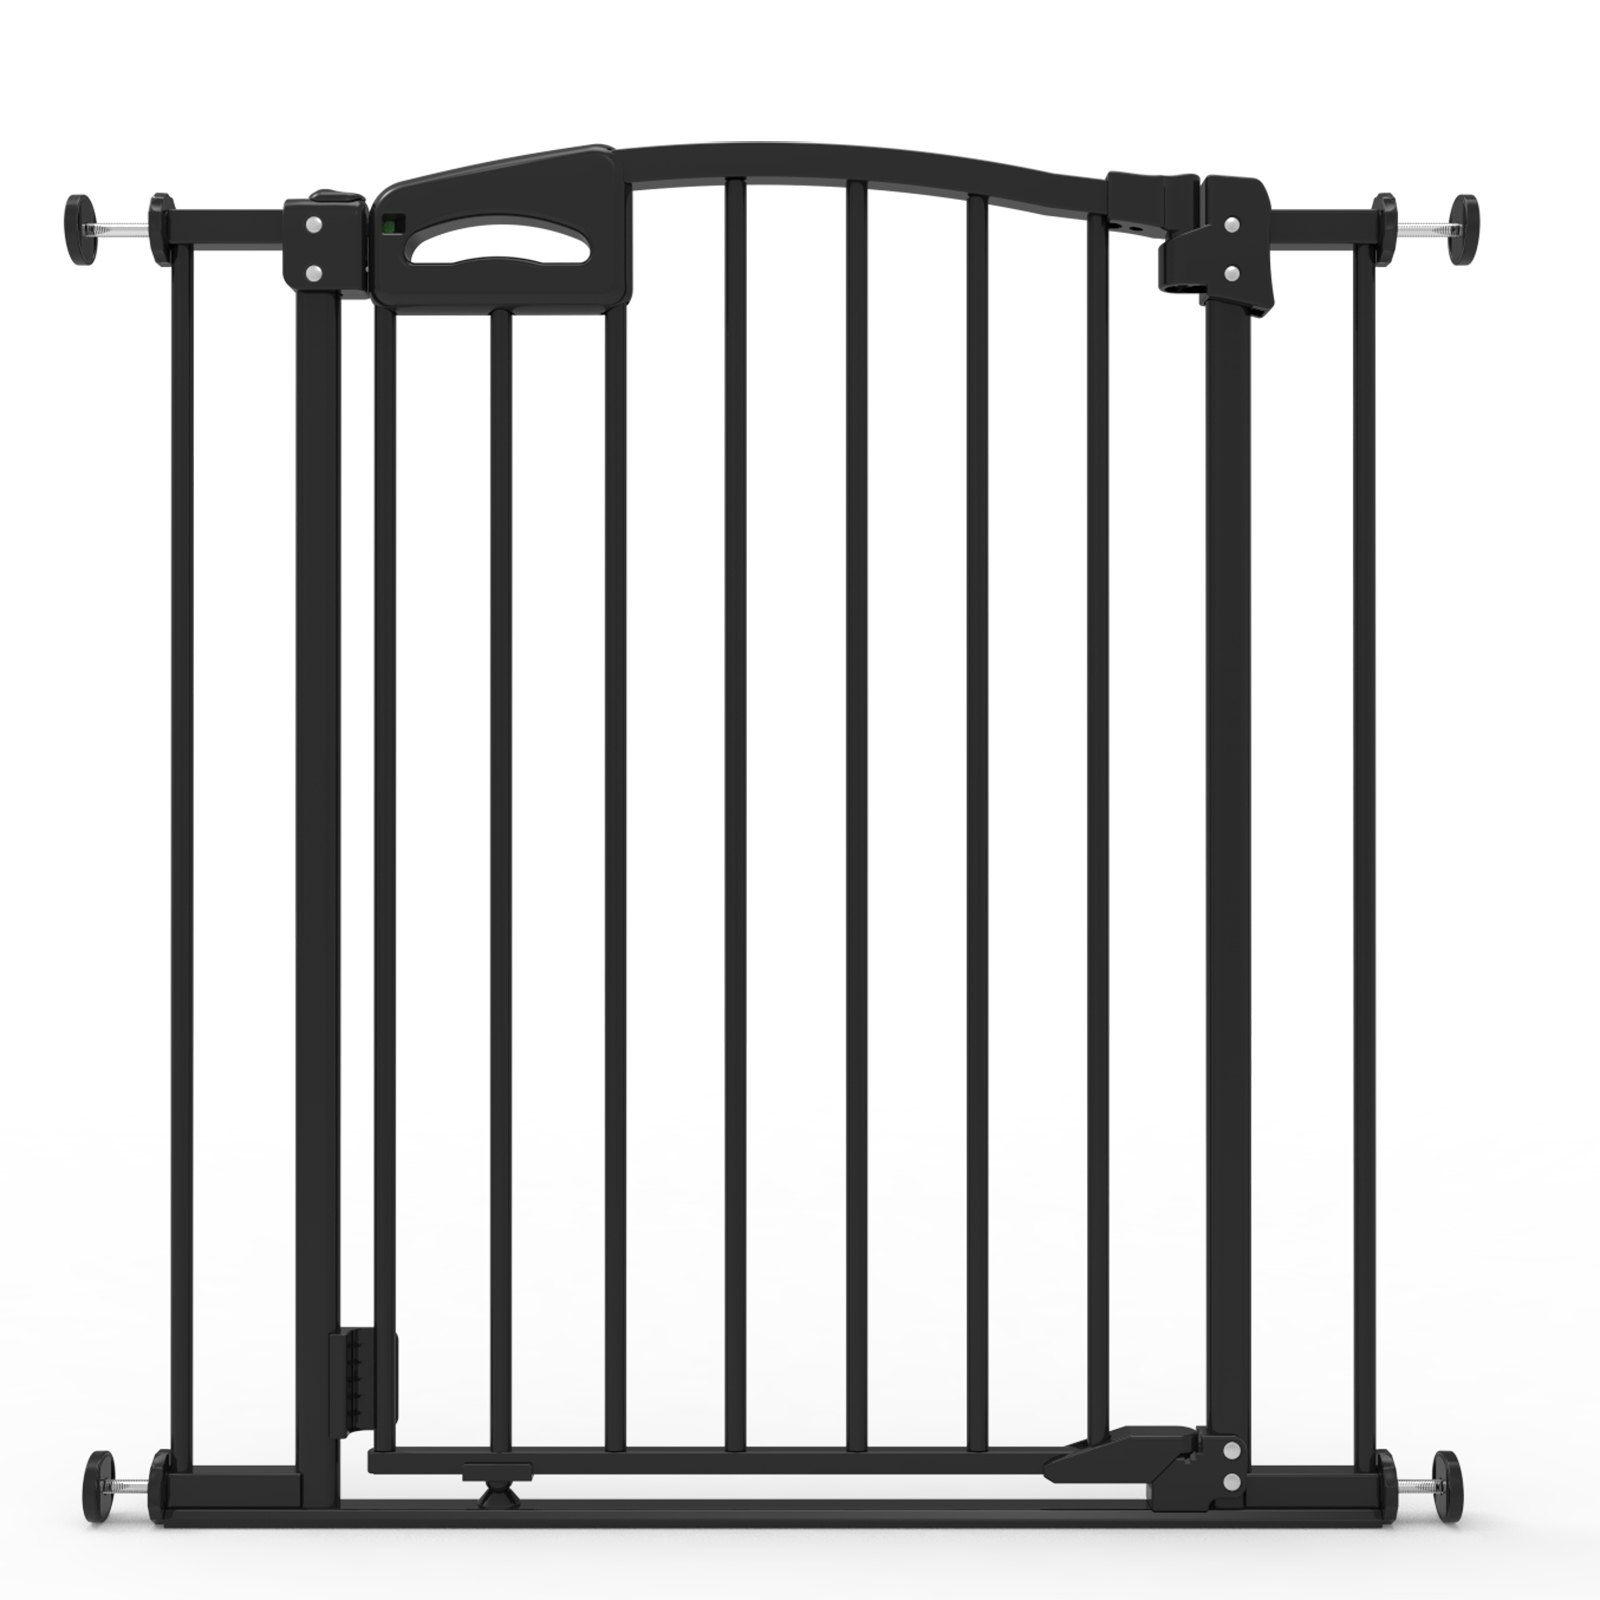 Perma Ultimate Baby Gate, Safe Step , Auto Close & Locking Indicator, Pressure Mounted, Black